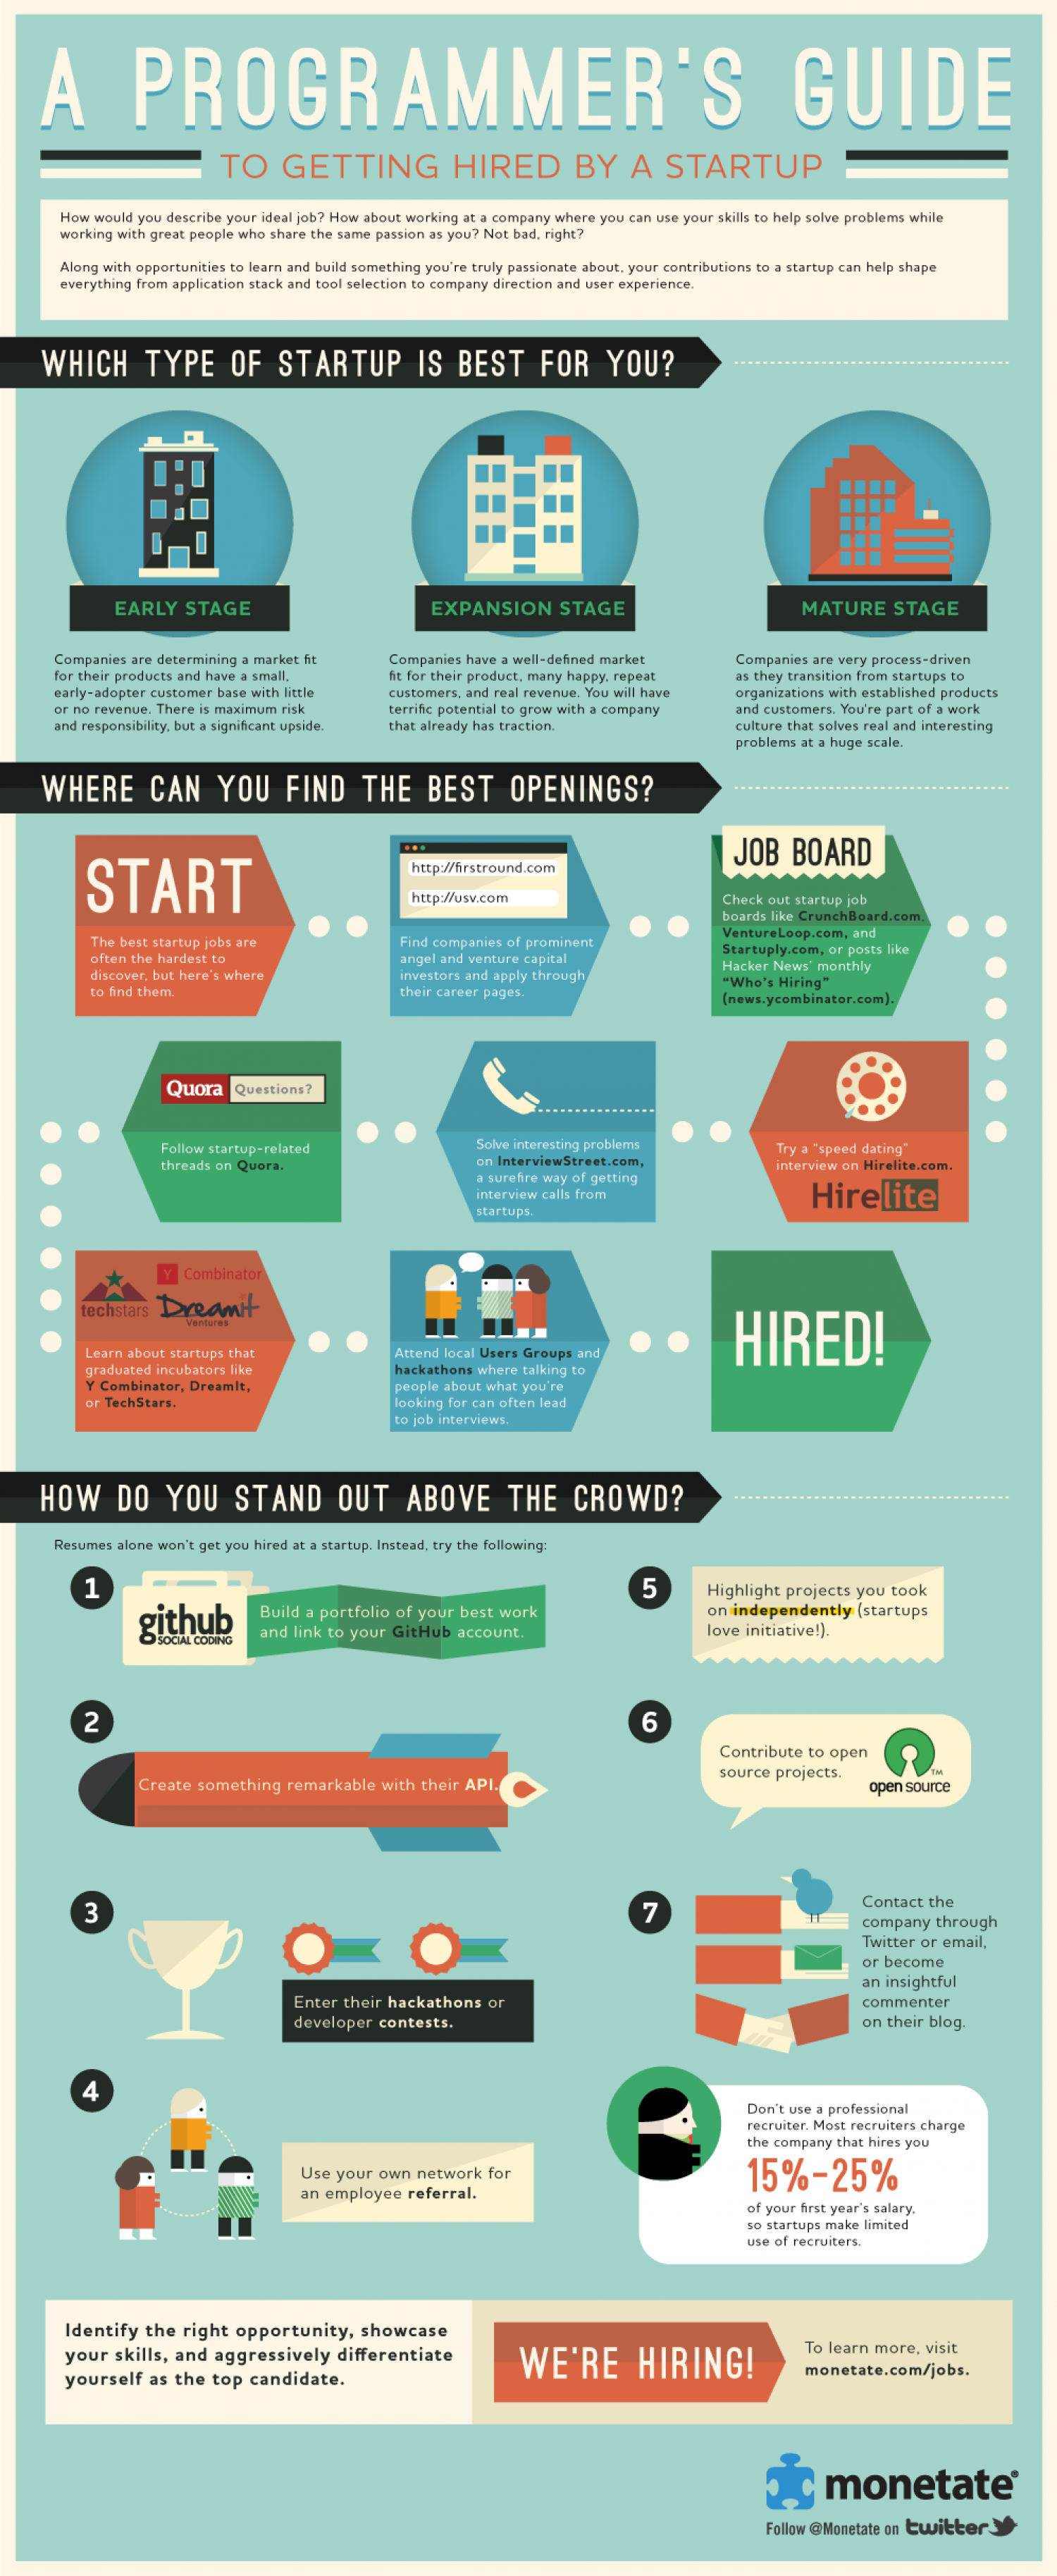 A Programmer's Guide to Getting Hired By a Startup Infographic